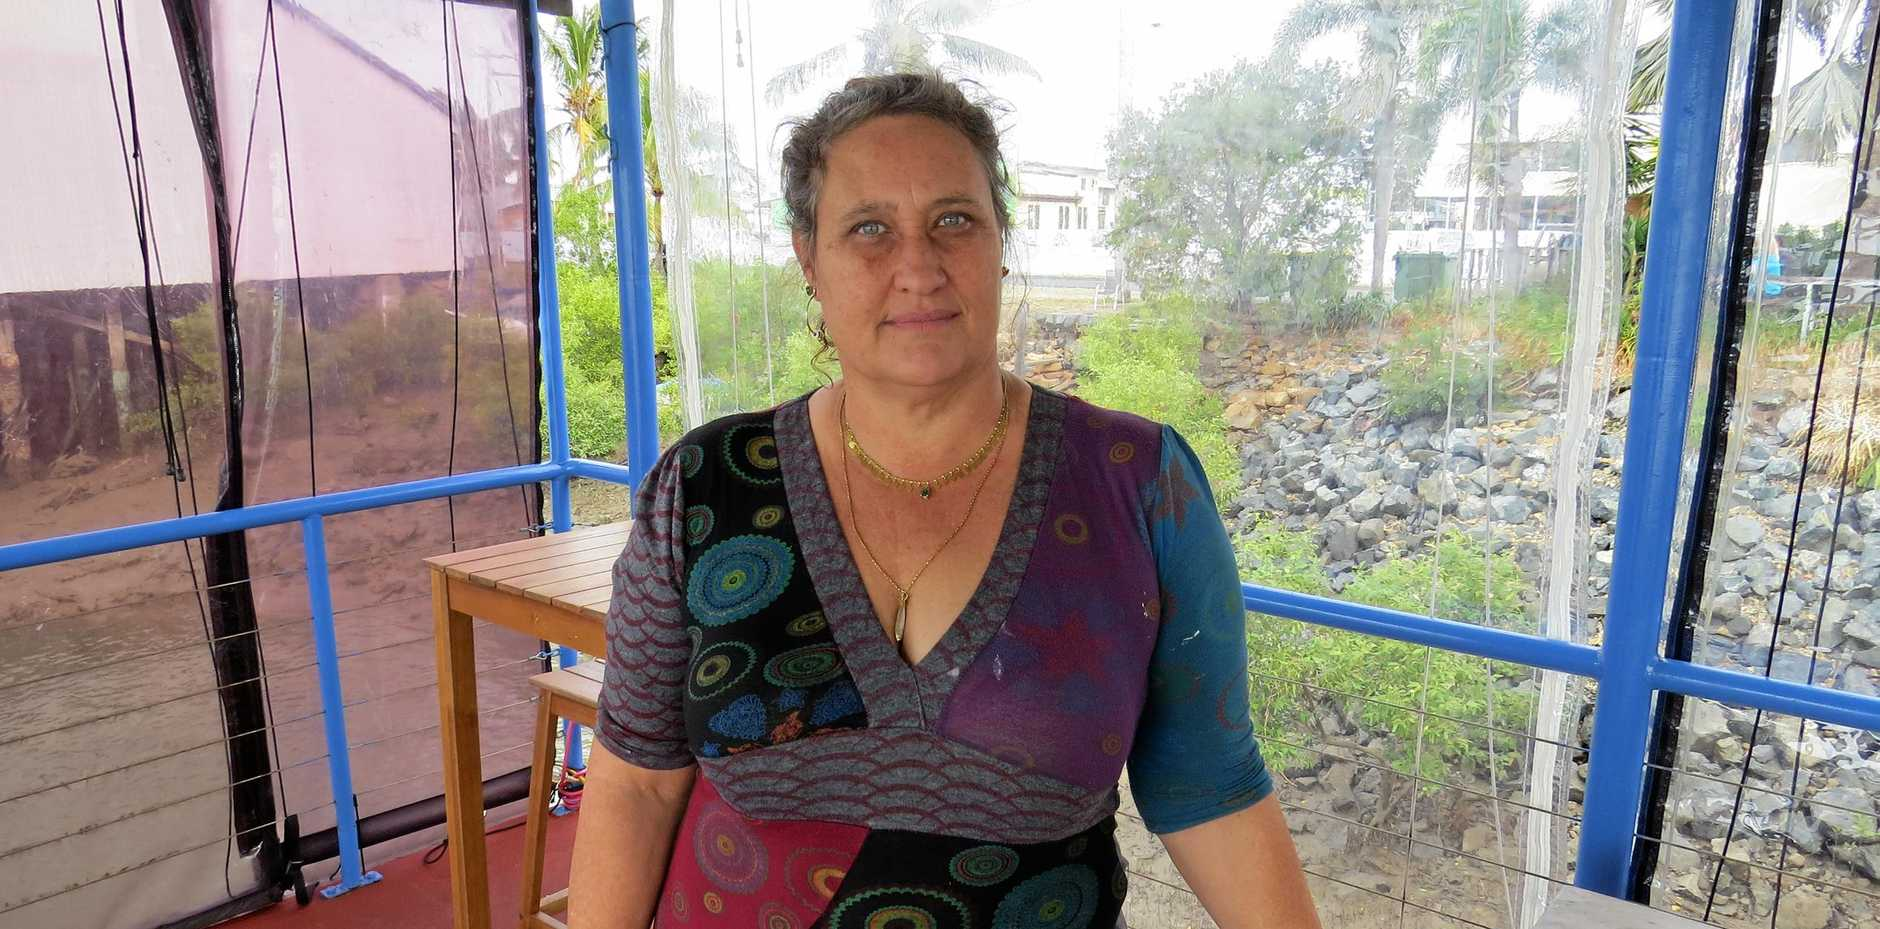 STILL STUCK: Maya Eidson, owner of Maria's Donkey has lost her citizenship appeal.